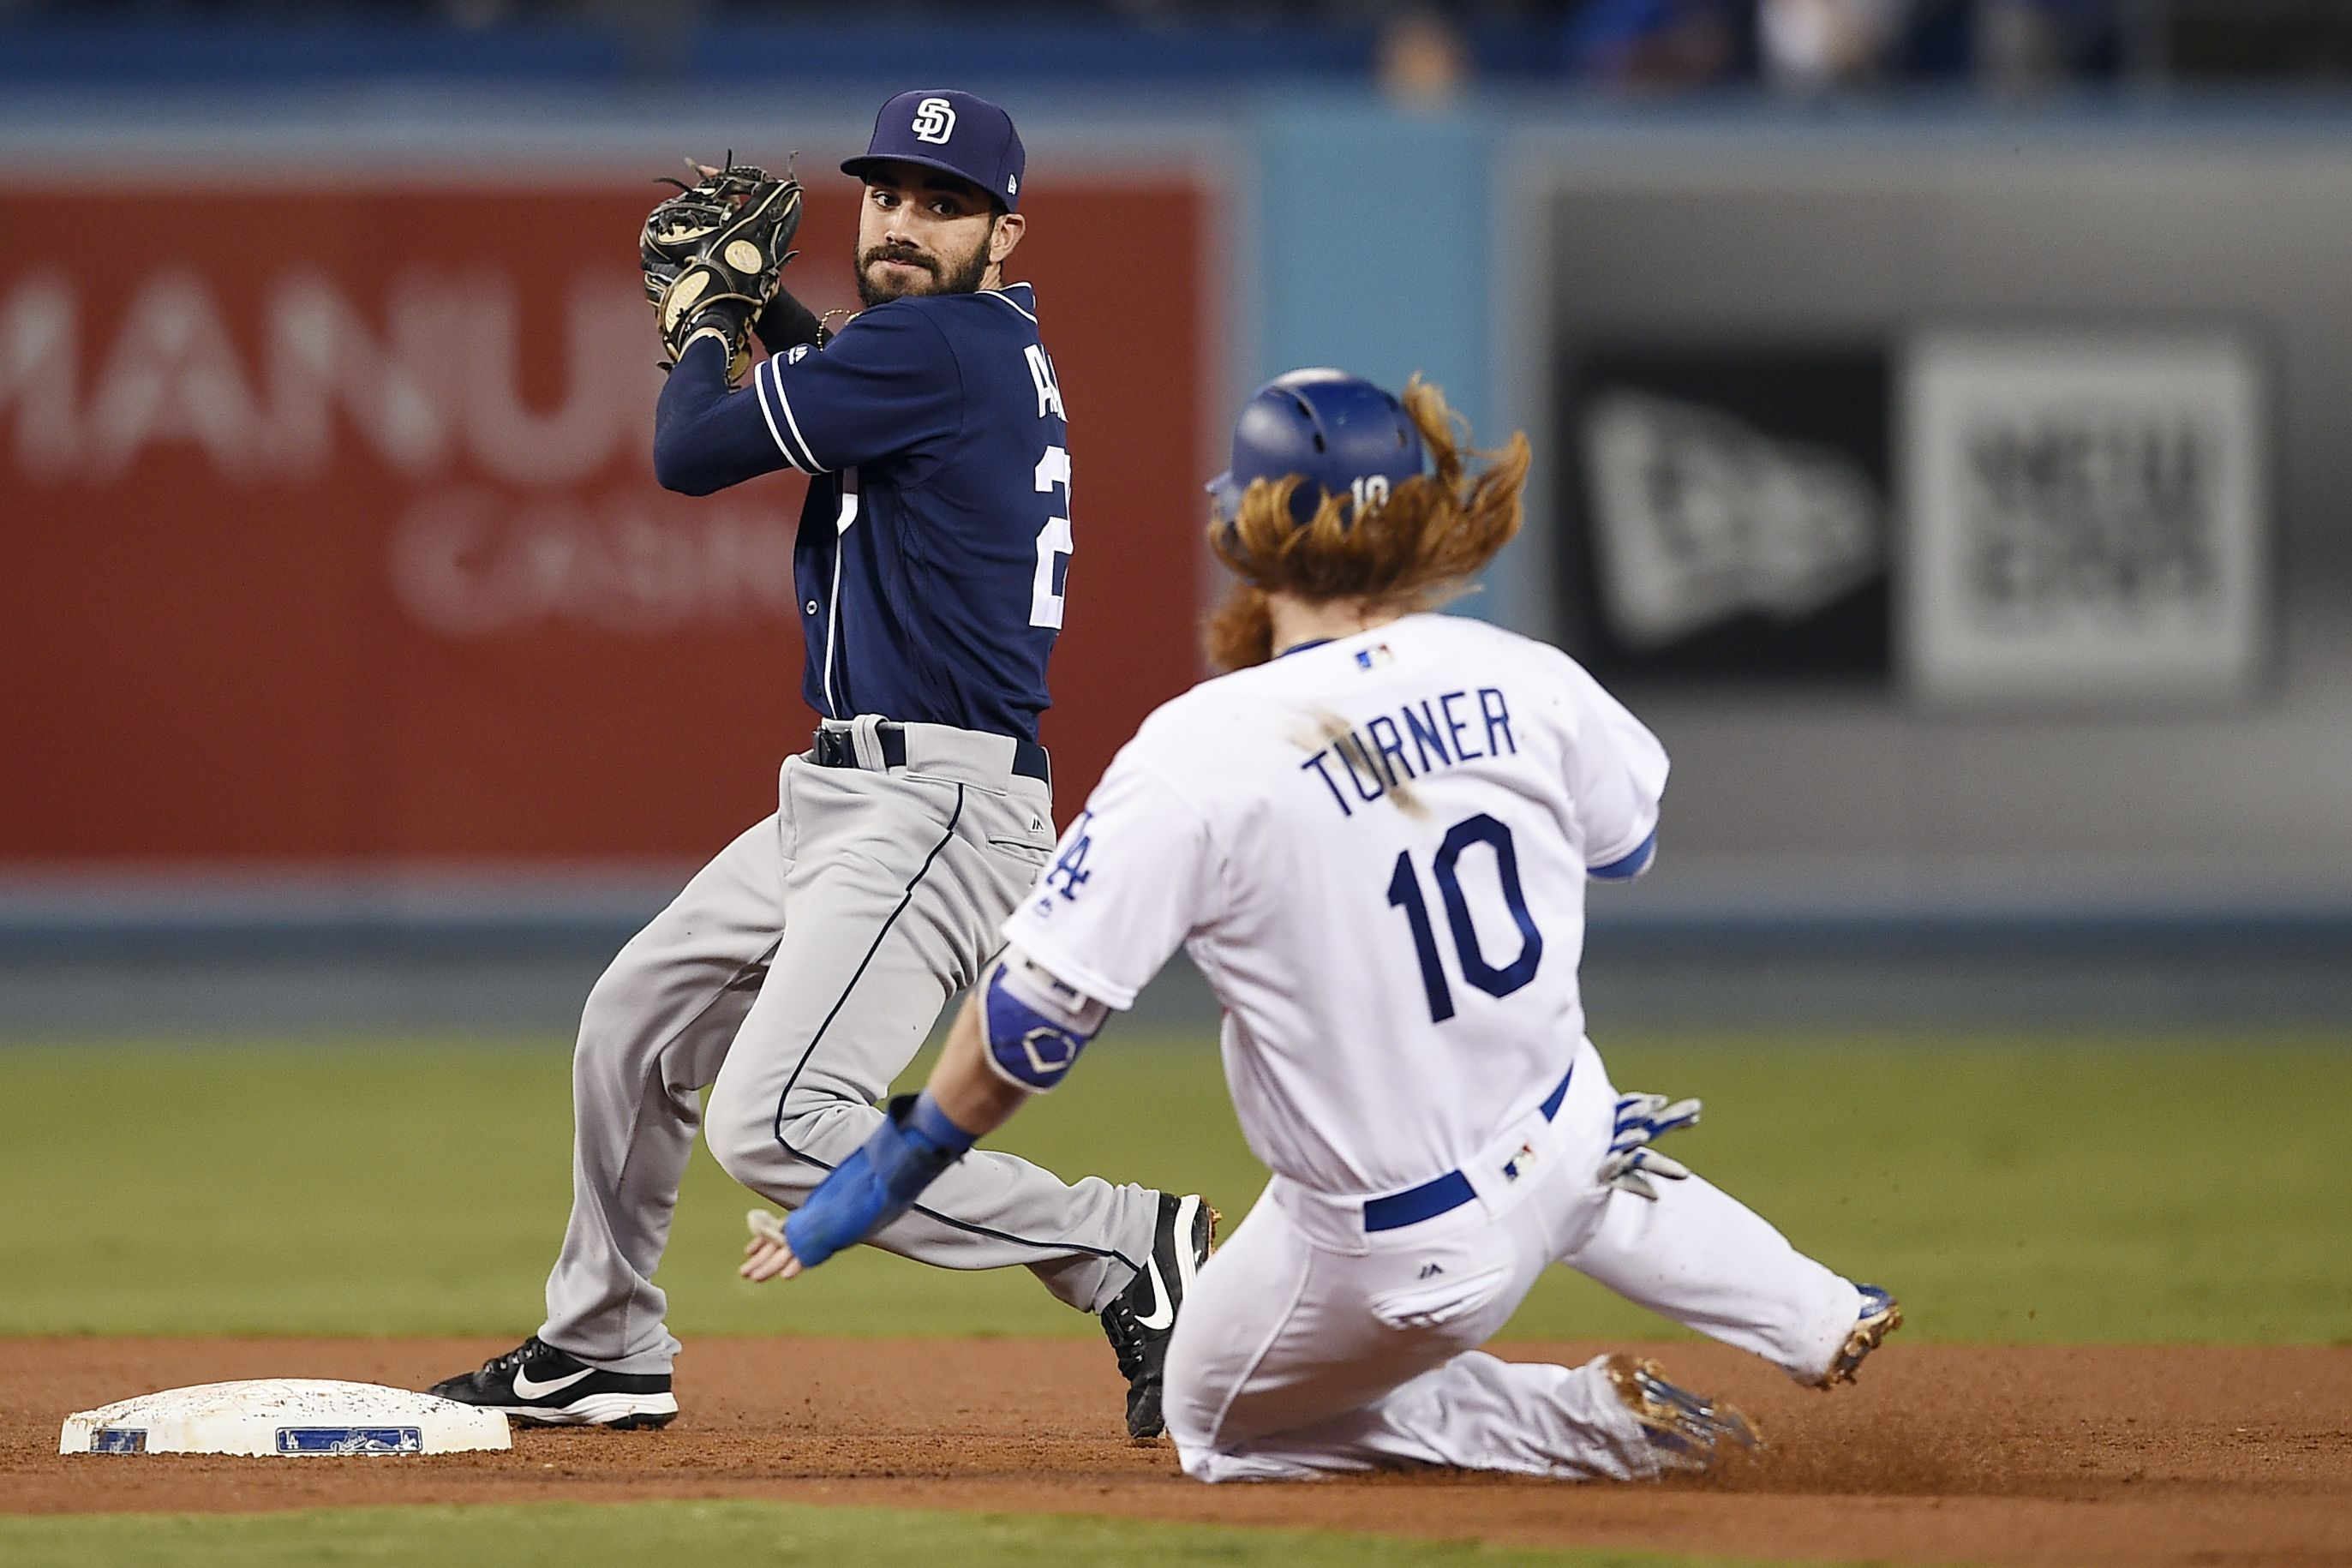 The La Dodgers And The San Diego Will Both Be Gunning For A Victory On 7 10 2018 At 10 10 Pm When They Meet In A Game Matchup With Images La Dodgers Dodgers Mlb